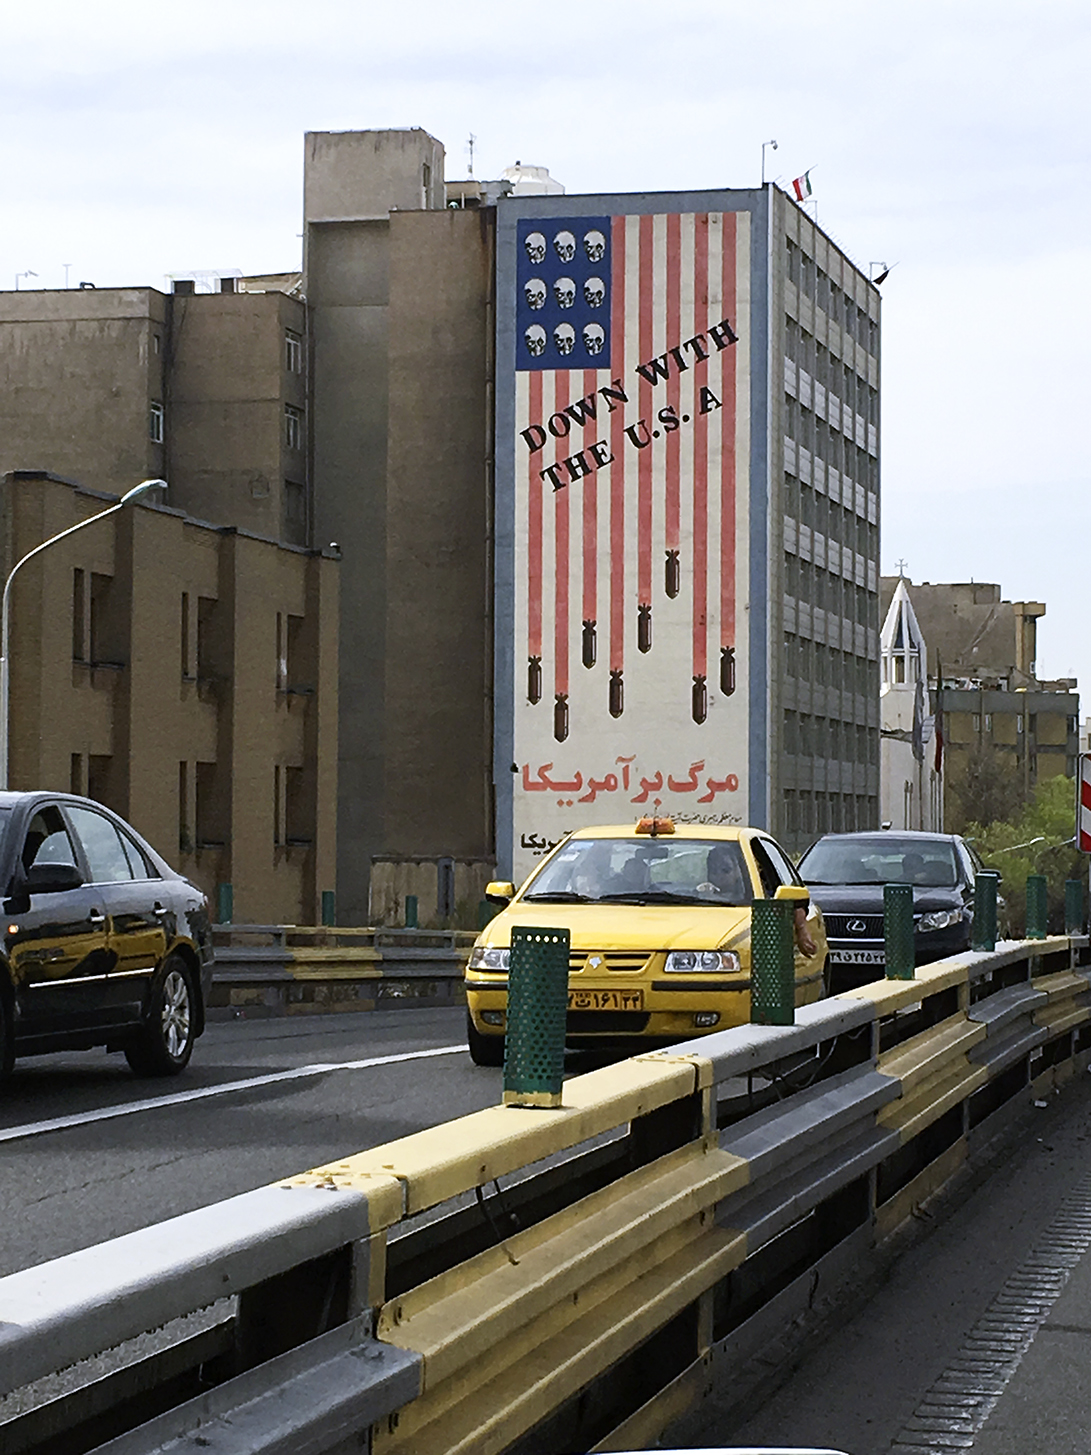 """A revolutionary mural in Tehran shows bombs and skulls on the US flag, with the words, """"We will not compromise with America, even for one second."""" The decades-old mural has remained, despite Iran's nuclear deal with the West."""